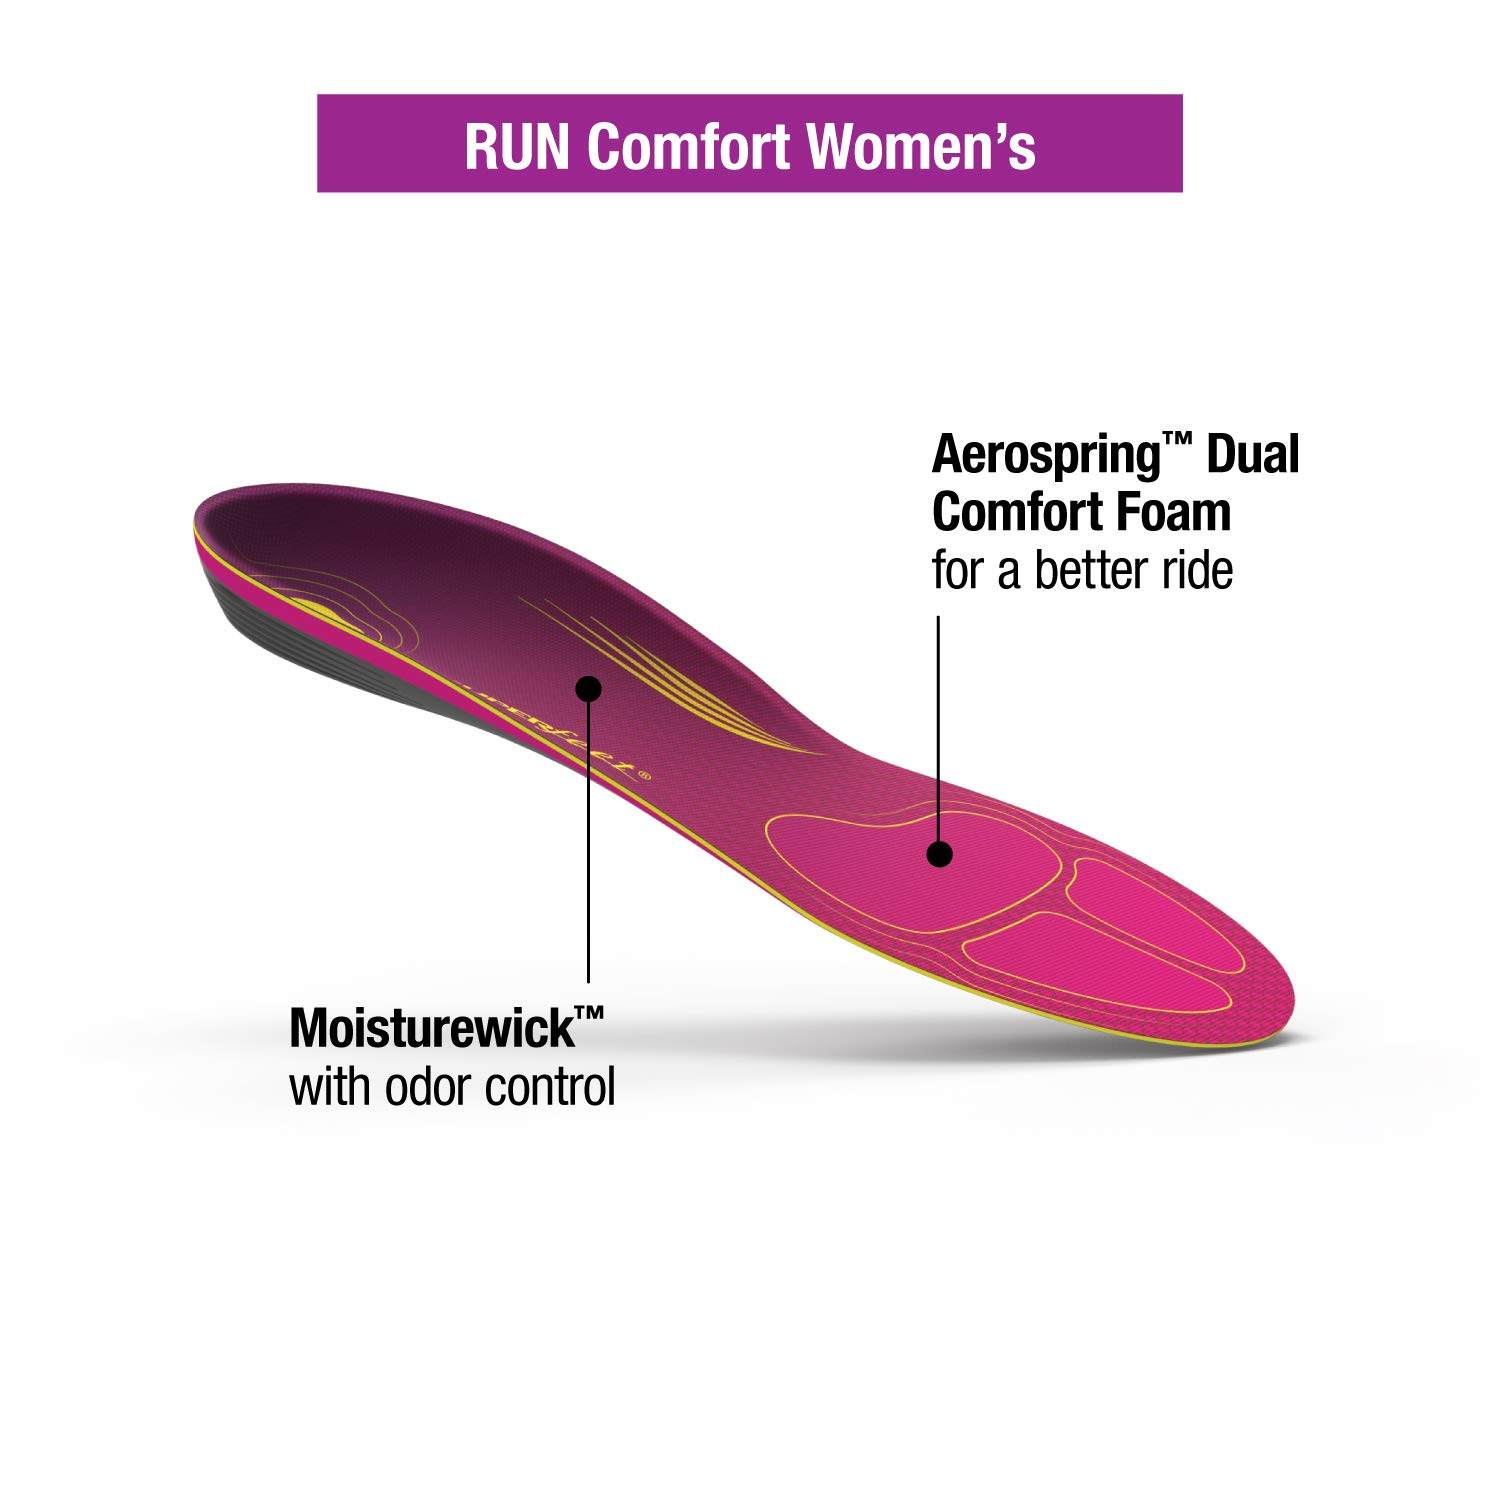 Superfeet Women's RUN Comfort Insoles Carbon Fiber Running Shoe Orthotic Inserts for Support and Cushion, Plum, Medium/D: 8.5-10 US Womens by Superfeet (Image #3)